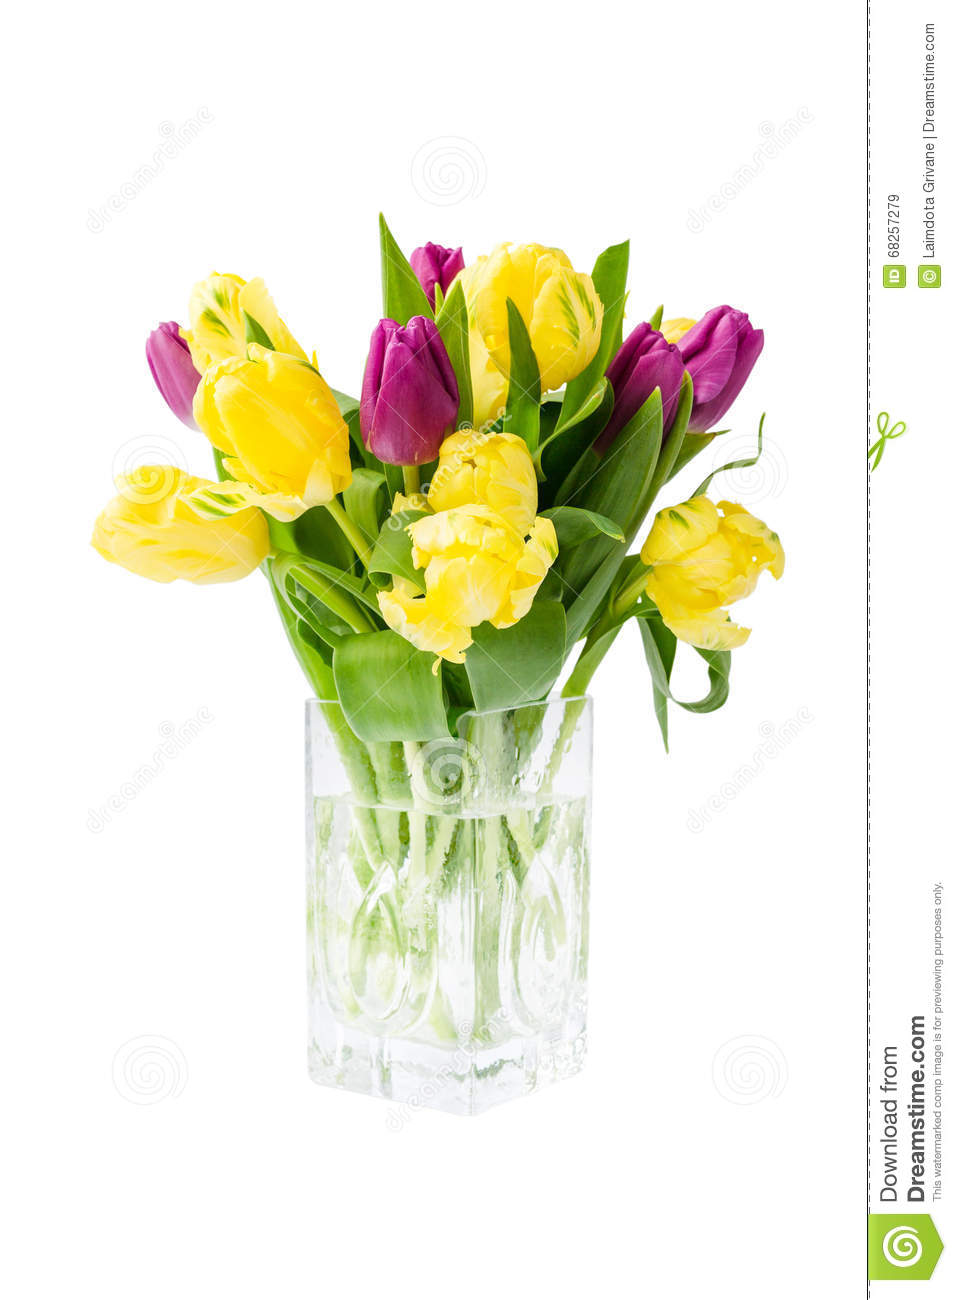 Bouquet des tulipes jaunes dans le vase d 39 isolement au for Bouquet de tulipes